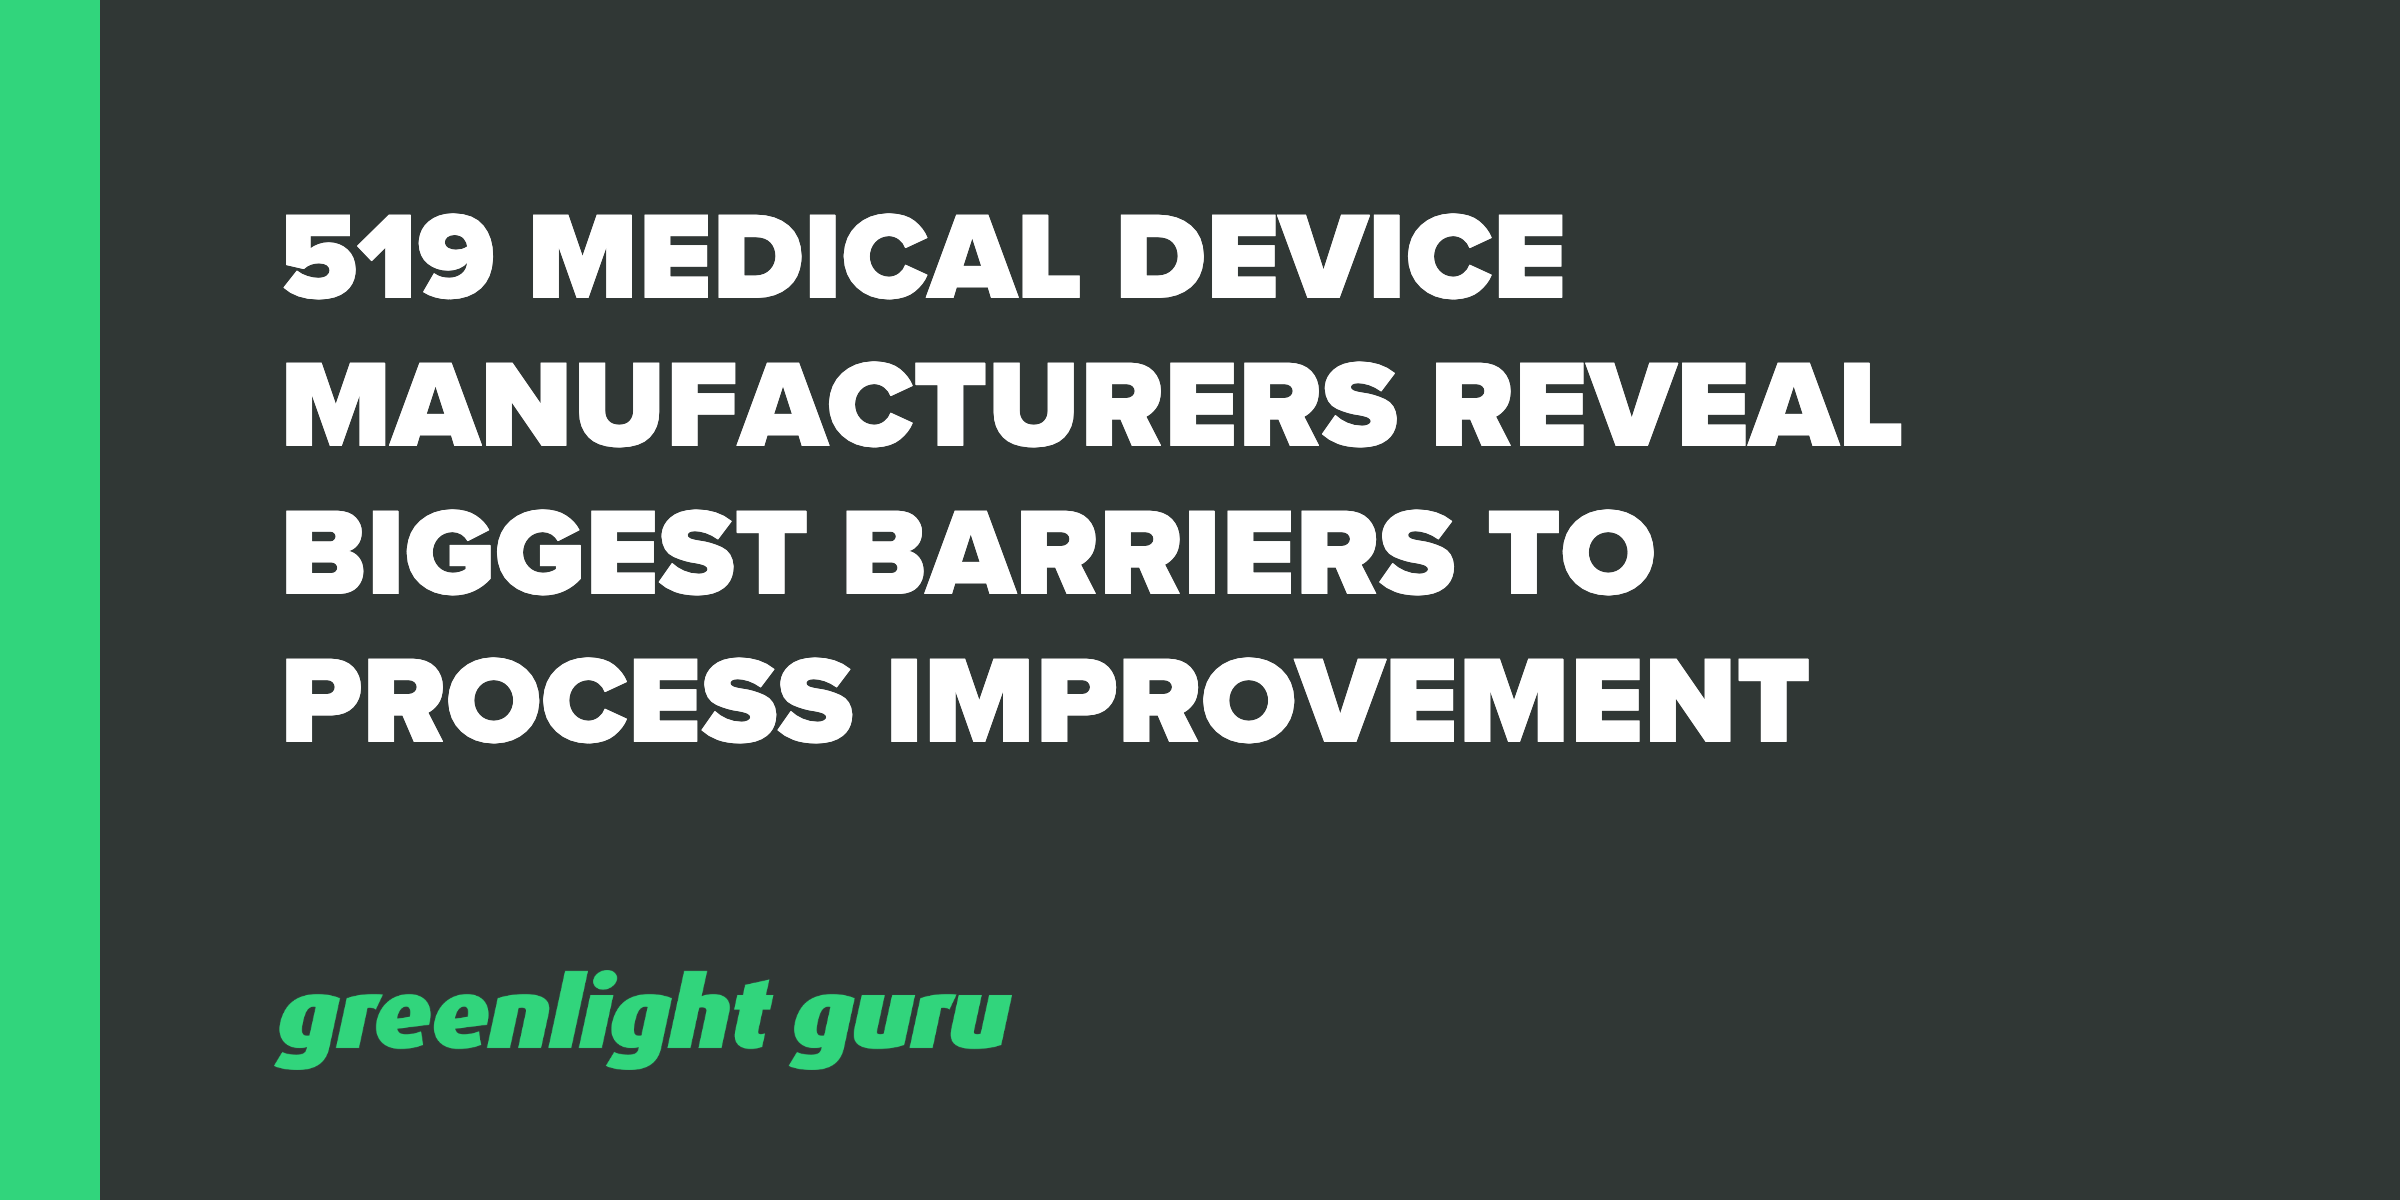 519 Medical Device Manufacturers Reveal Biggest Barriers to Process Improvement